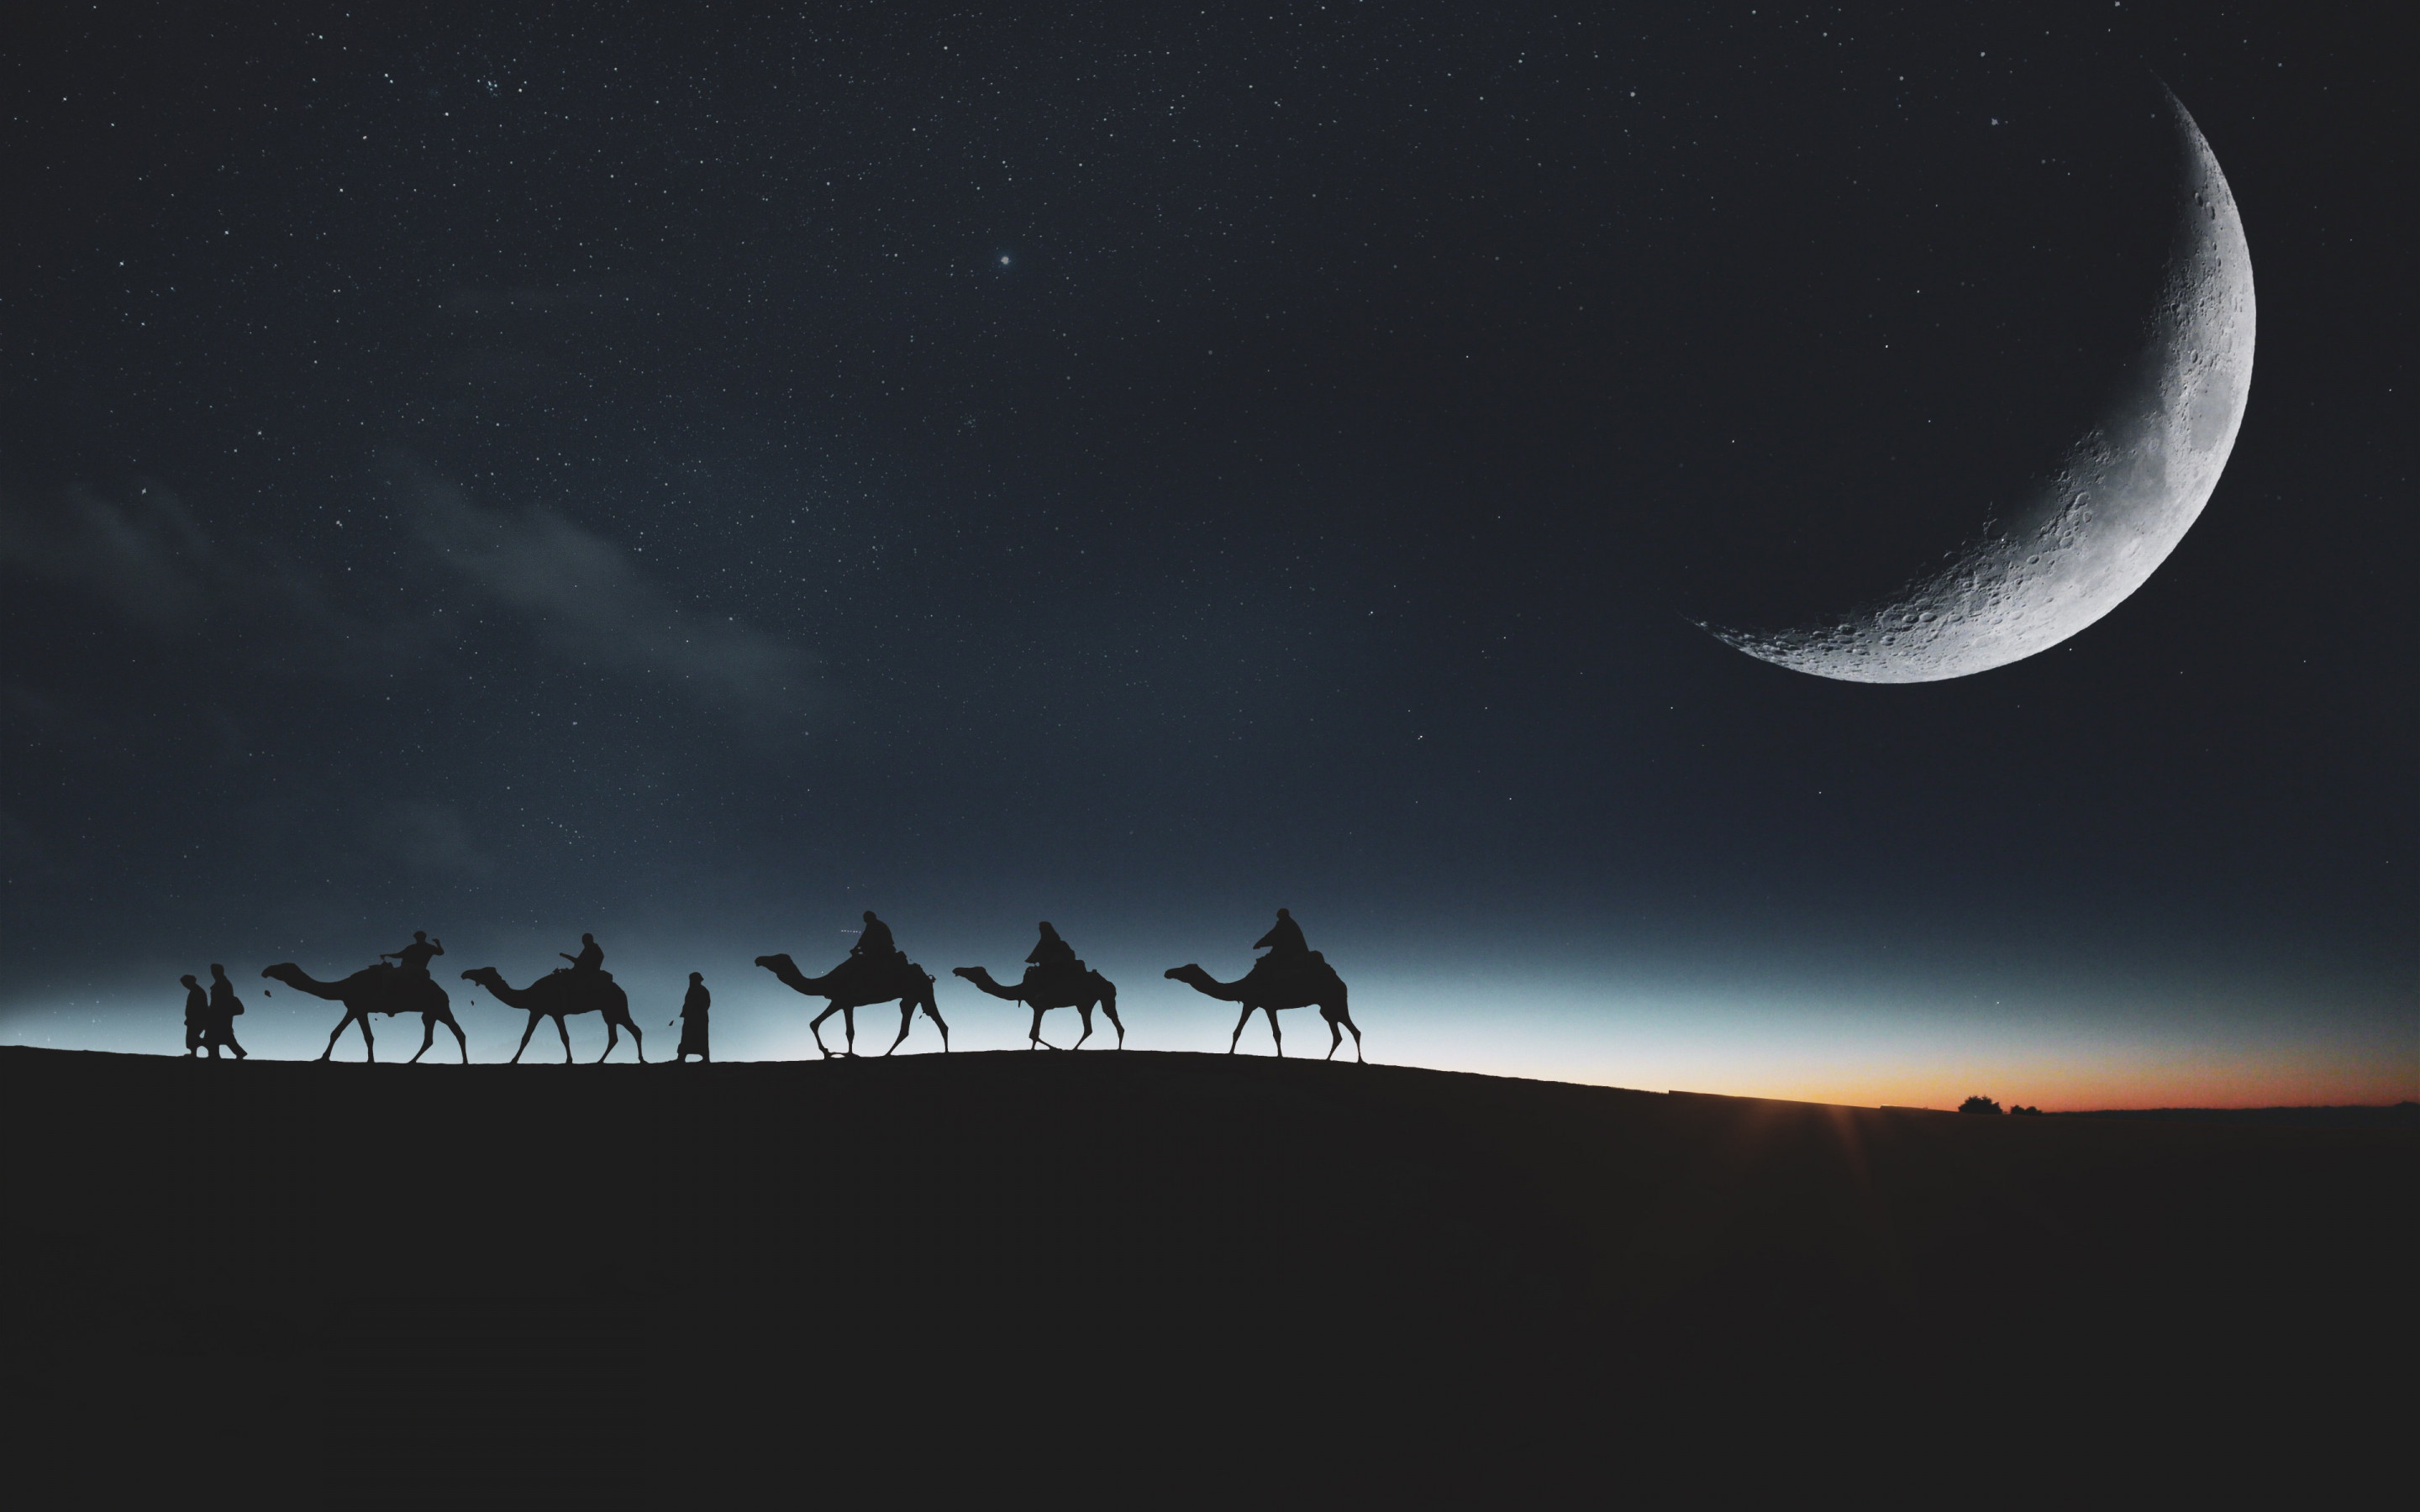 Traveling through desert on camels wallpaper 2880x1800